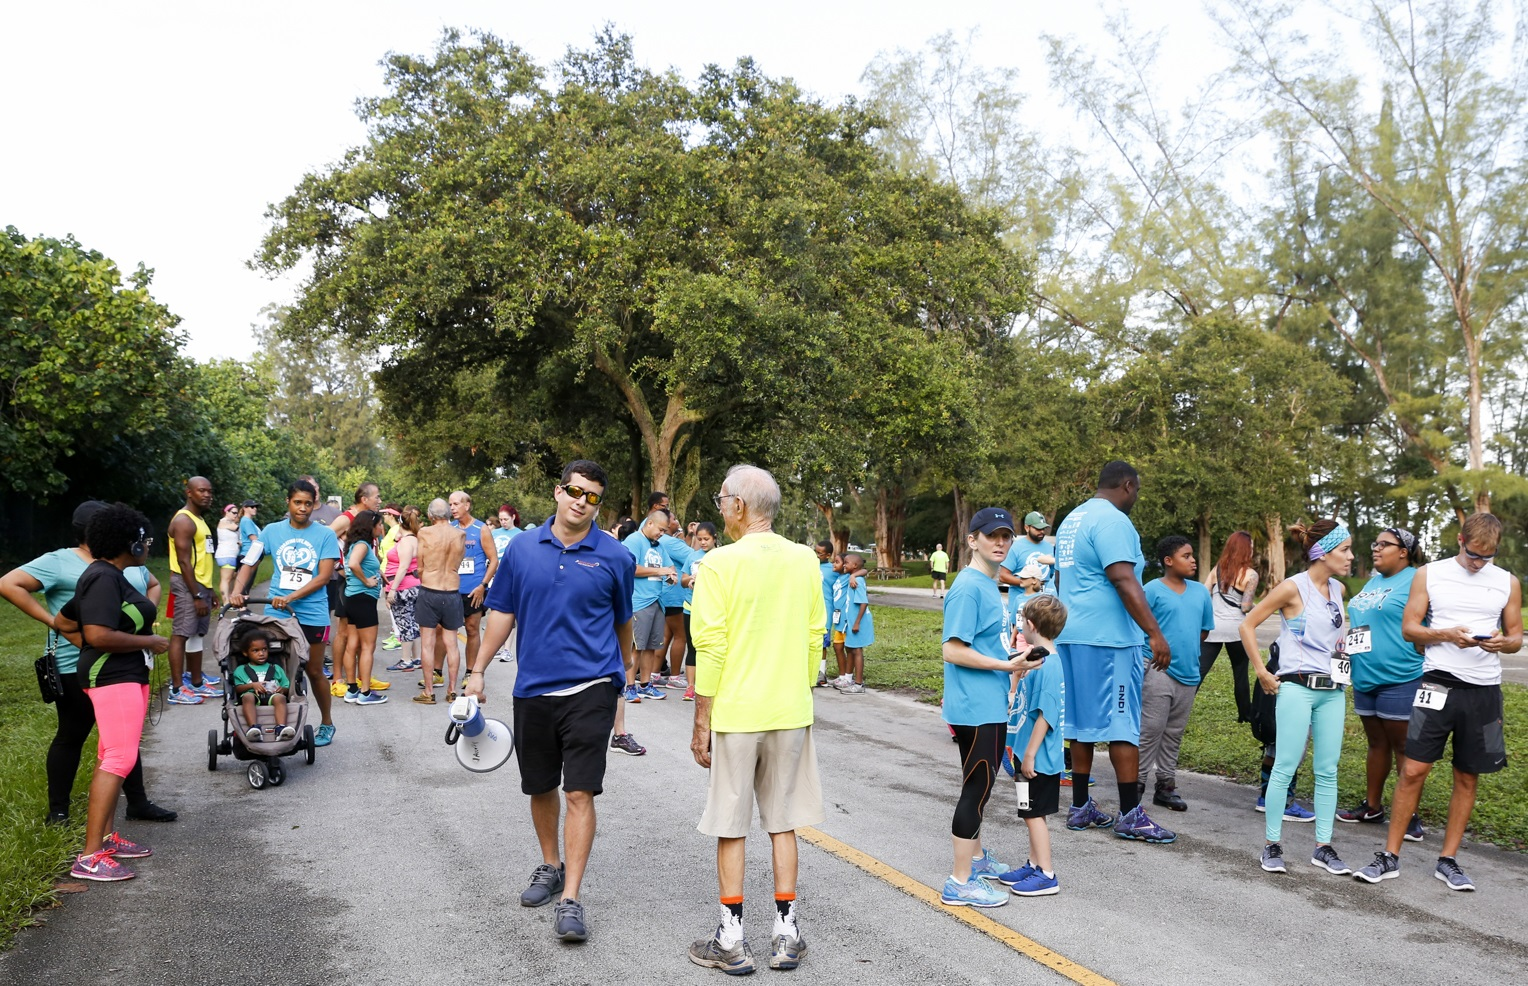 KF 0189 - Florida Teal 5K Run/ Fun Walk 2016